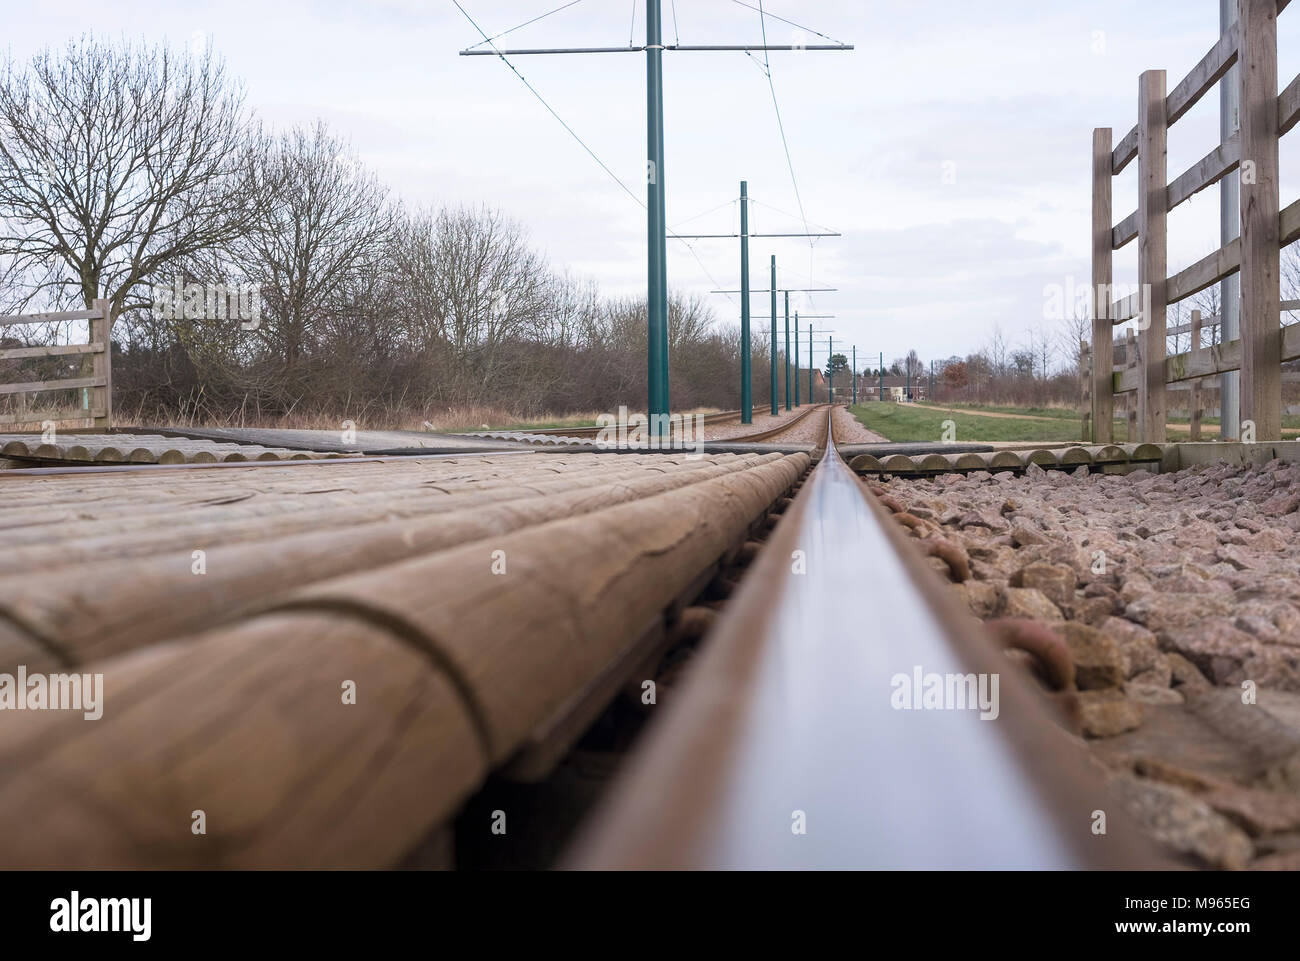 Worms eye view along a tram rail - Stock Image